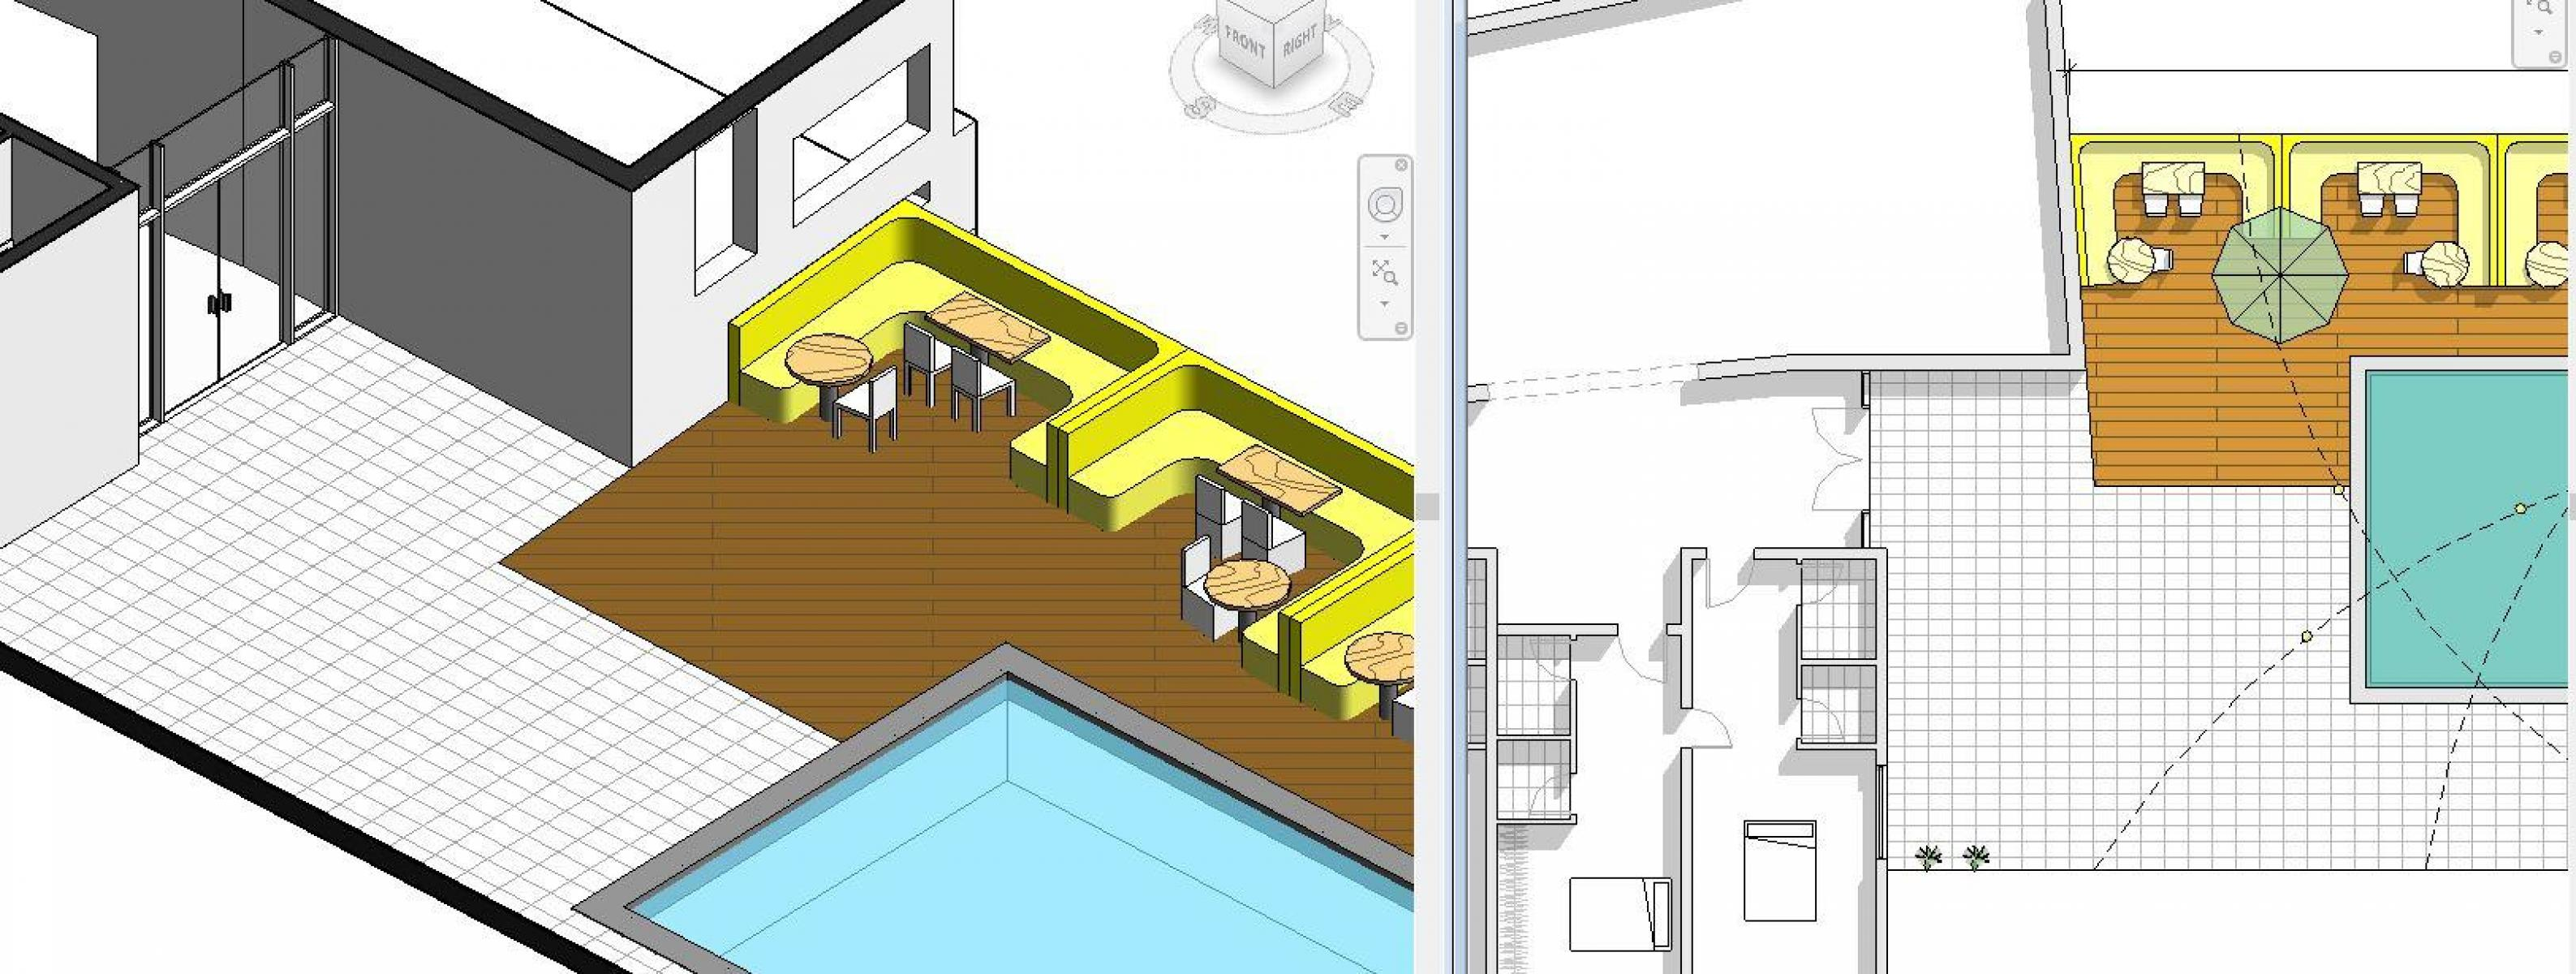 BIM Modelling in Revit